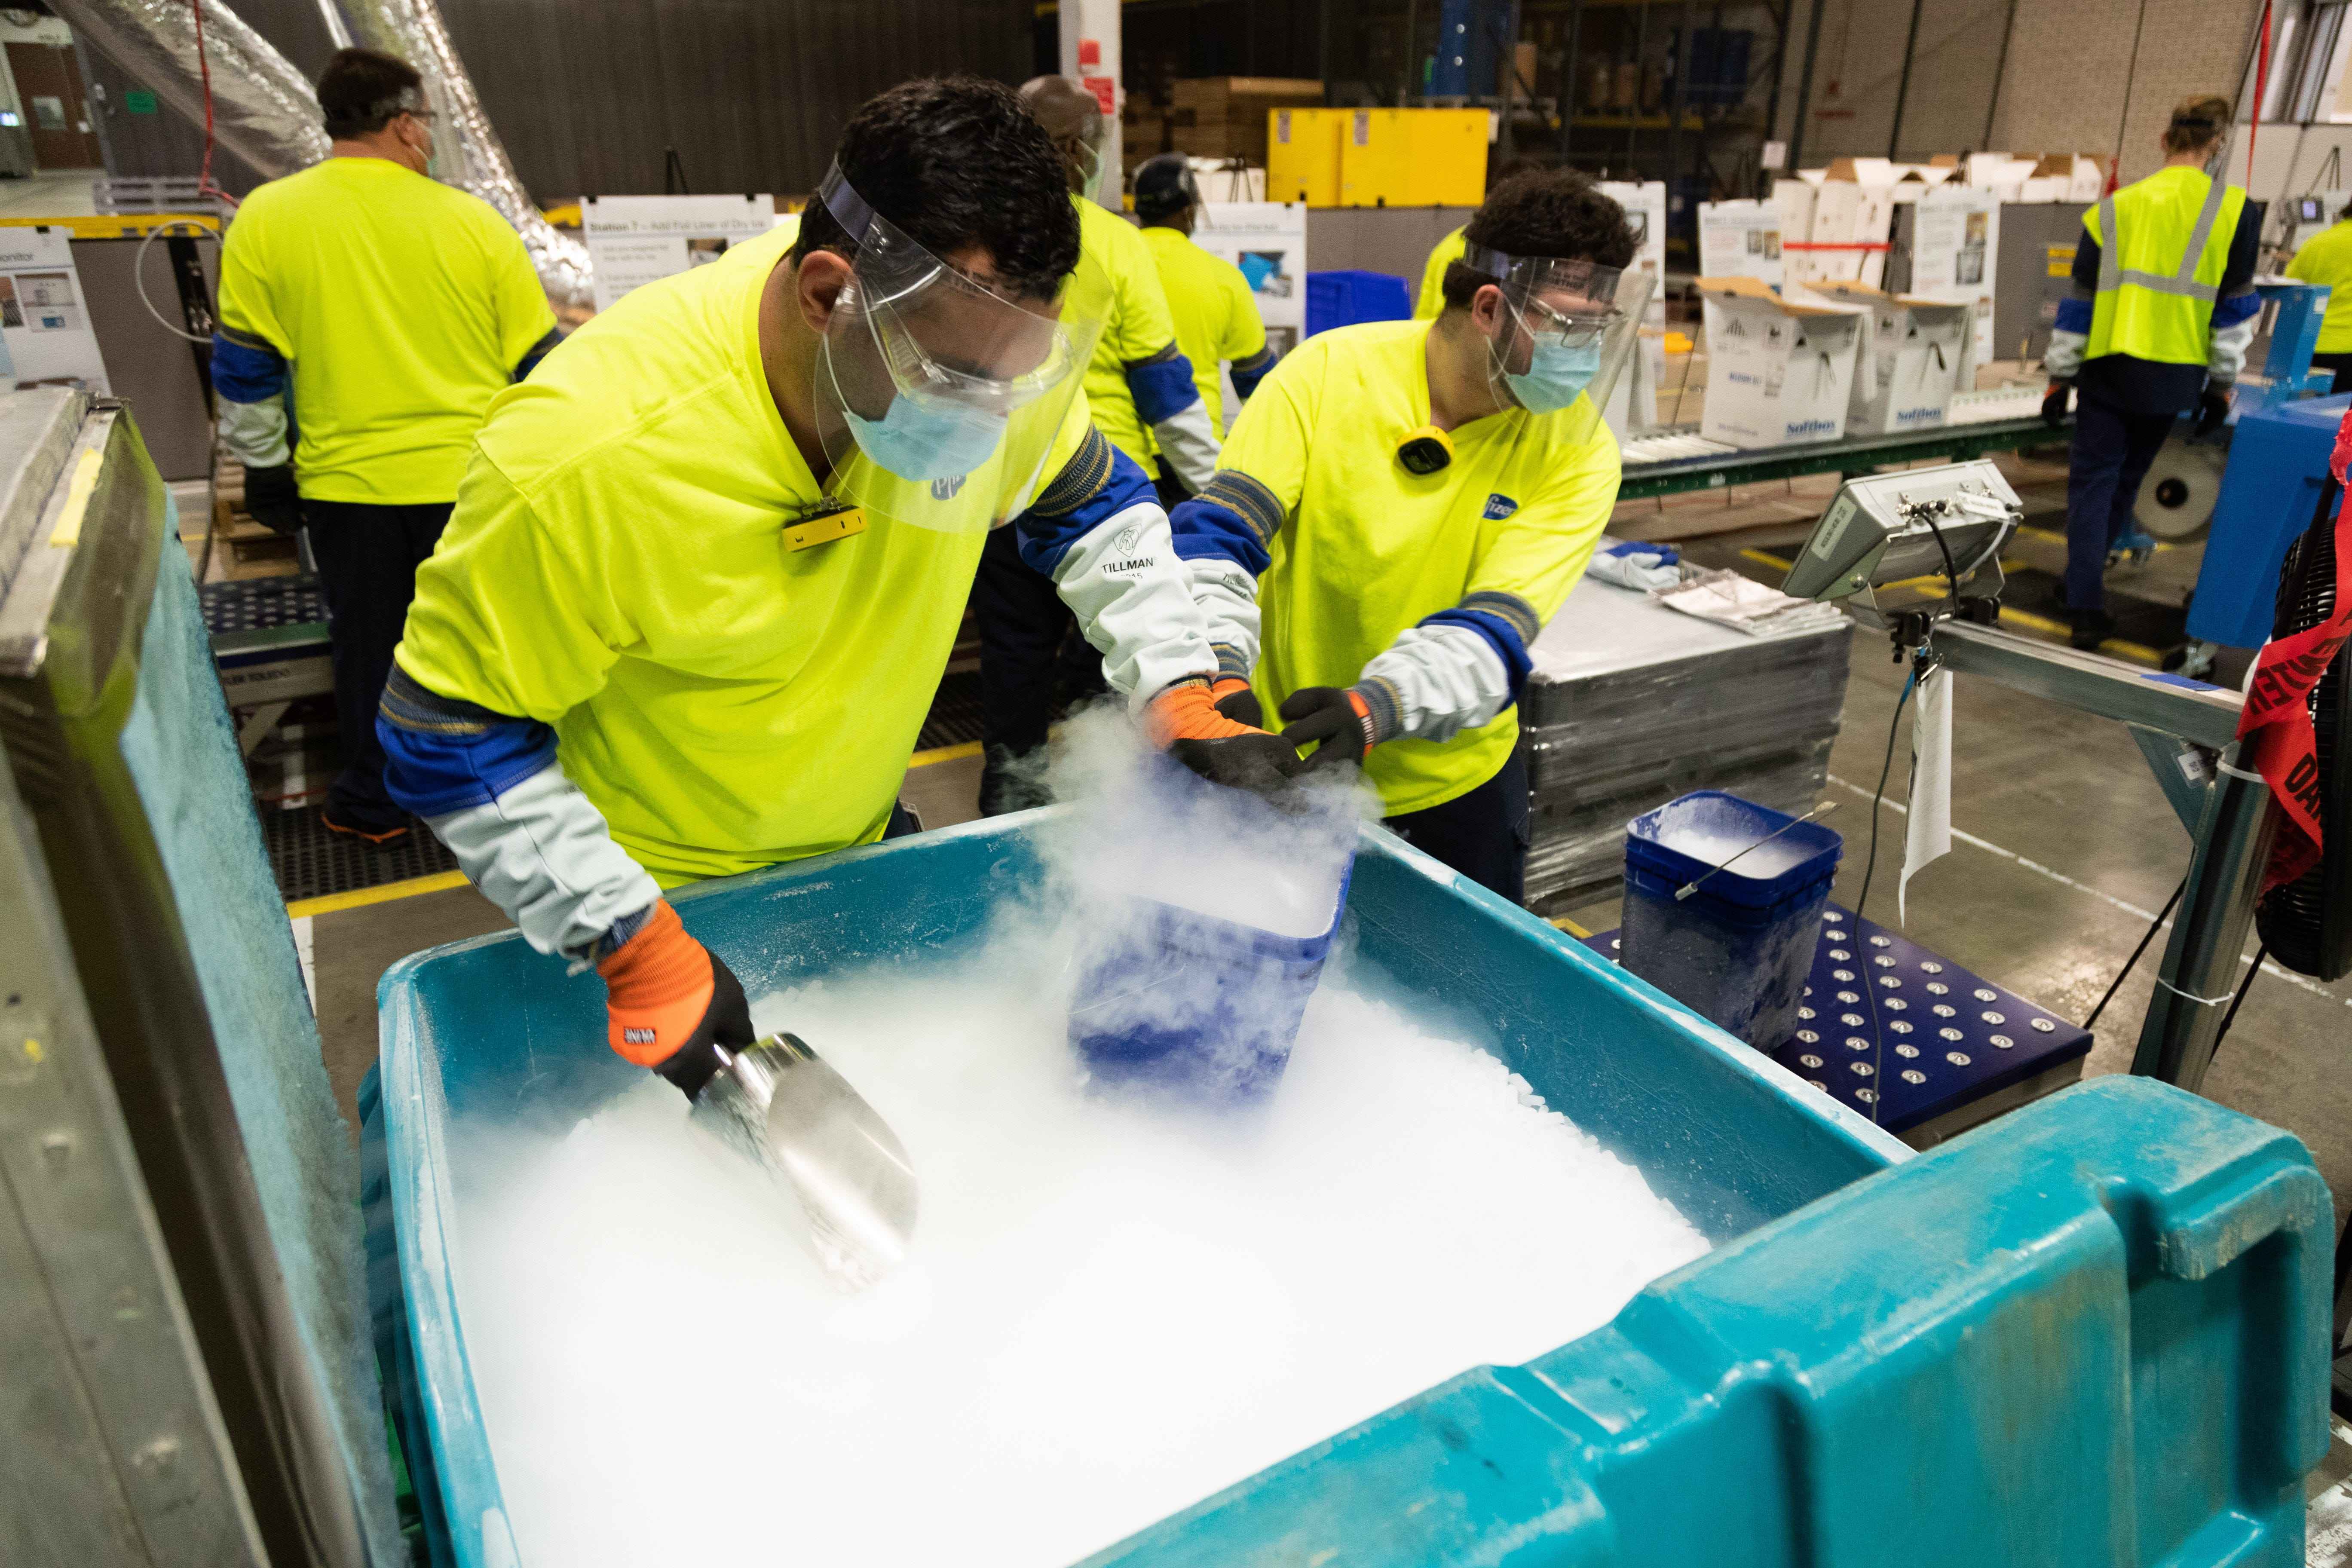 Workers at Pfizer's manufacturing site in Kalamazoo, Michigan, fill buckets with dry ice that will be poured into thermal shipping containers holding the COVID-19 vaccine. The thermal shippers are used to ship vaccines from Pfizer plants to their intended destinations at the required subzero temperature.